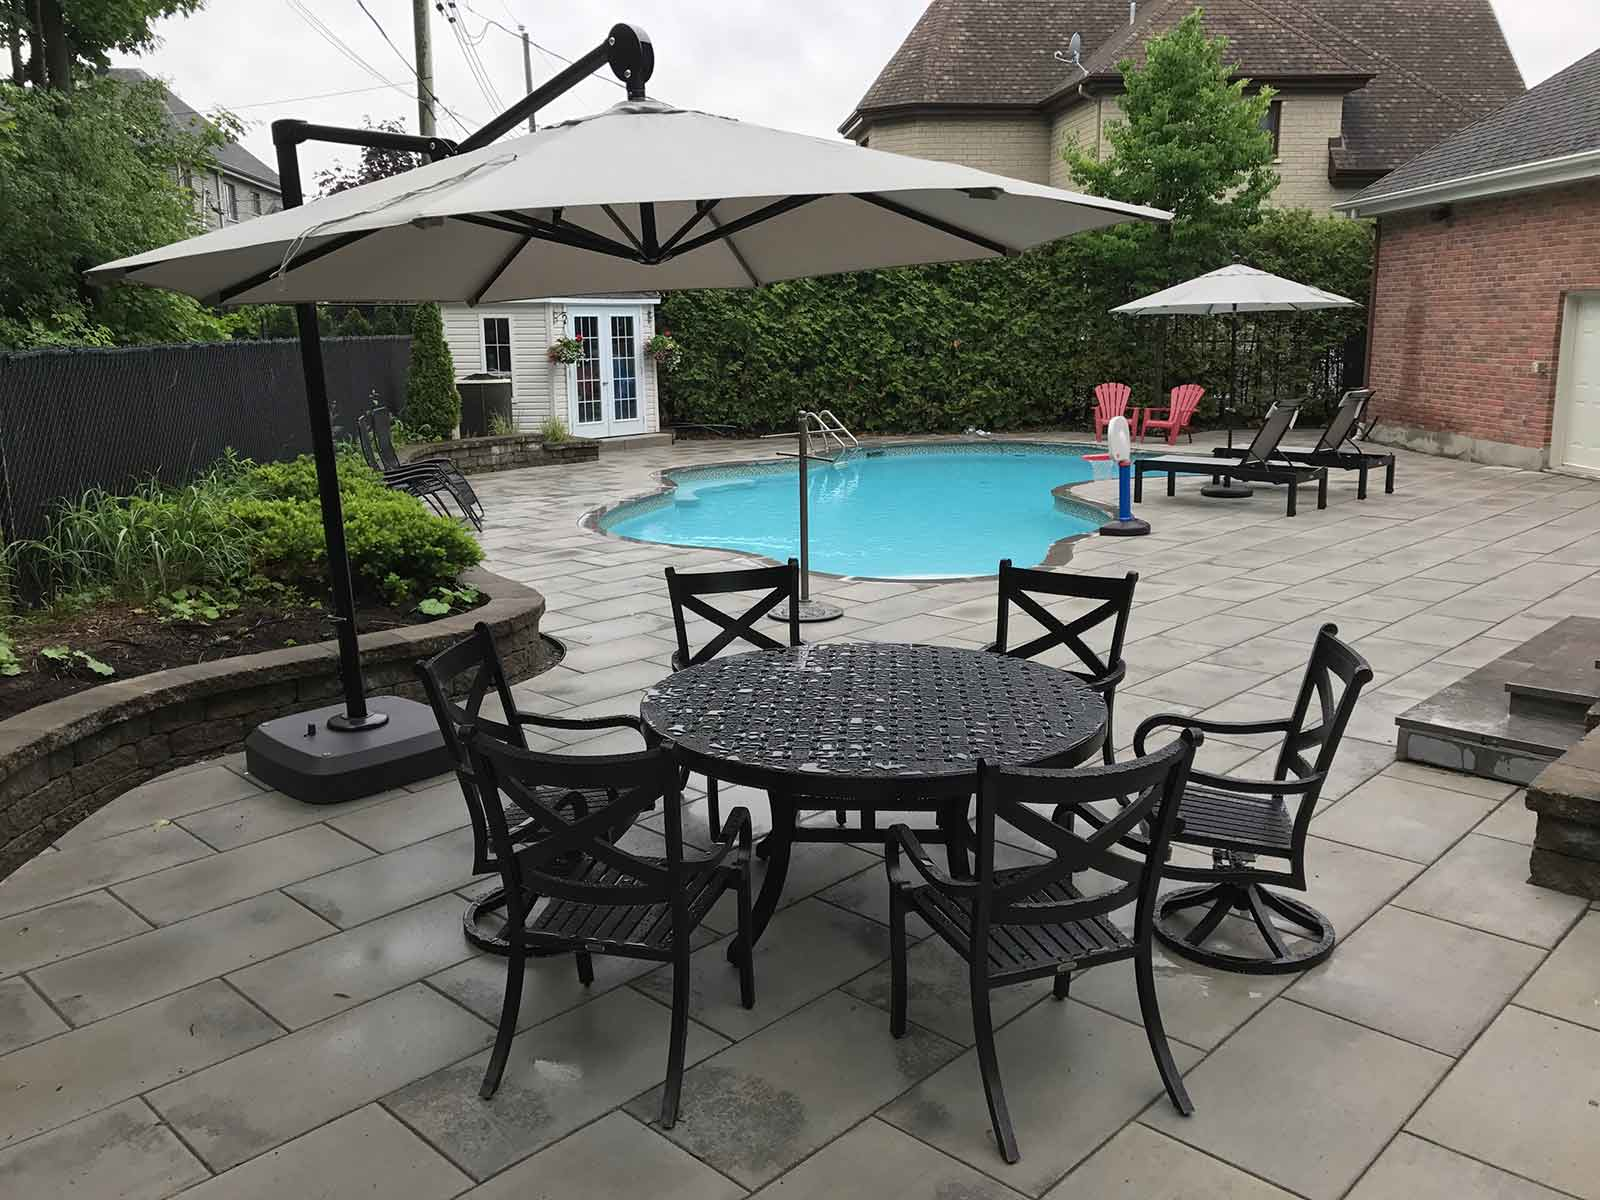 Parasols Résidentiels |  Meubles de Patio | JML inc.